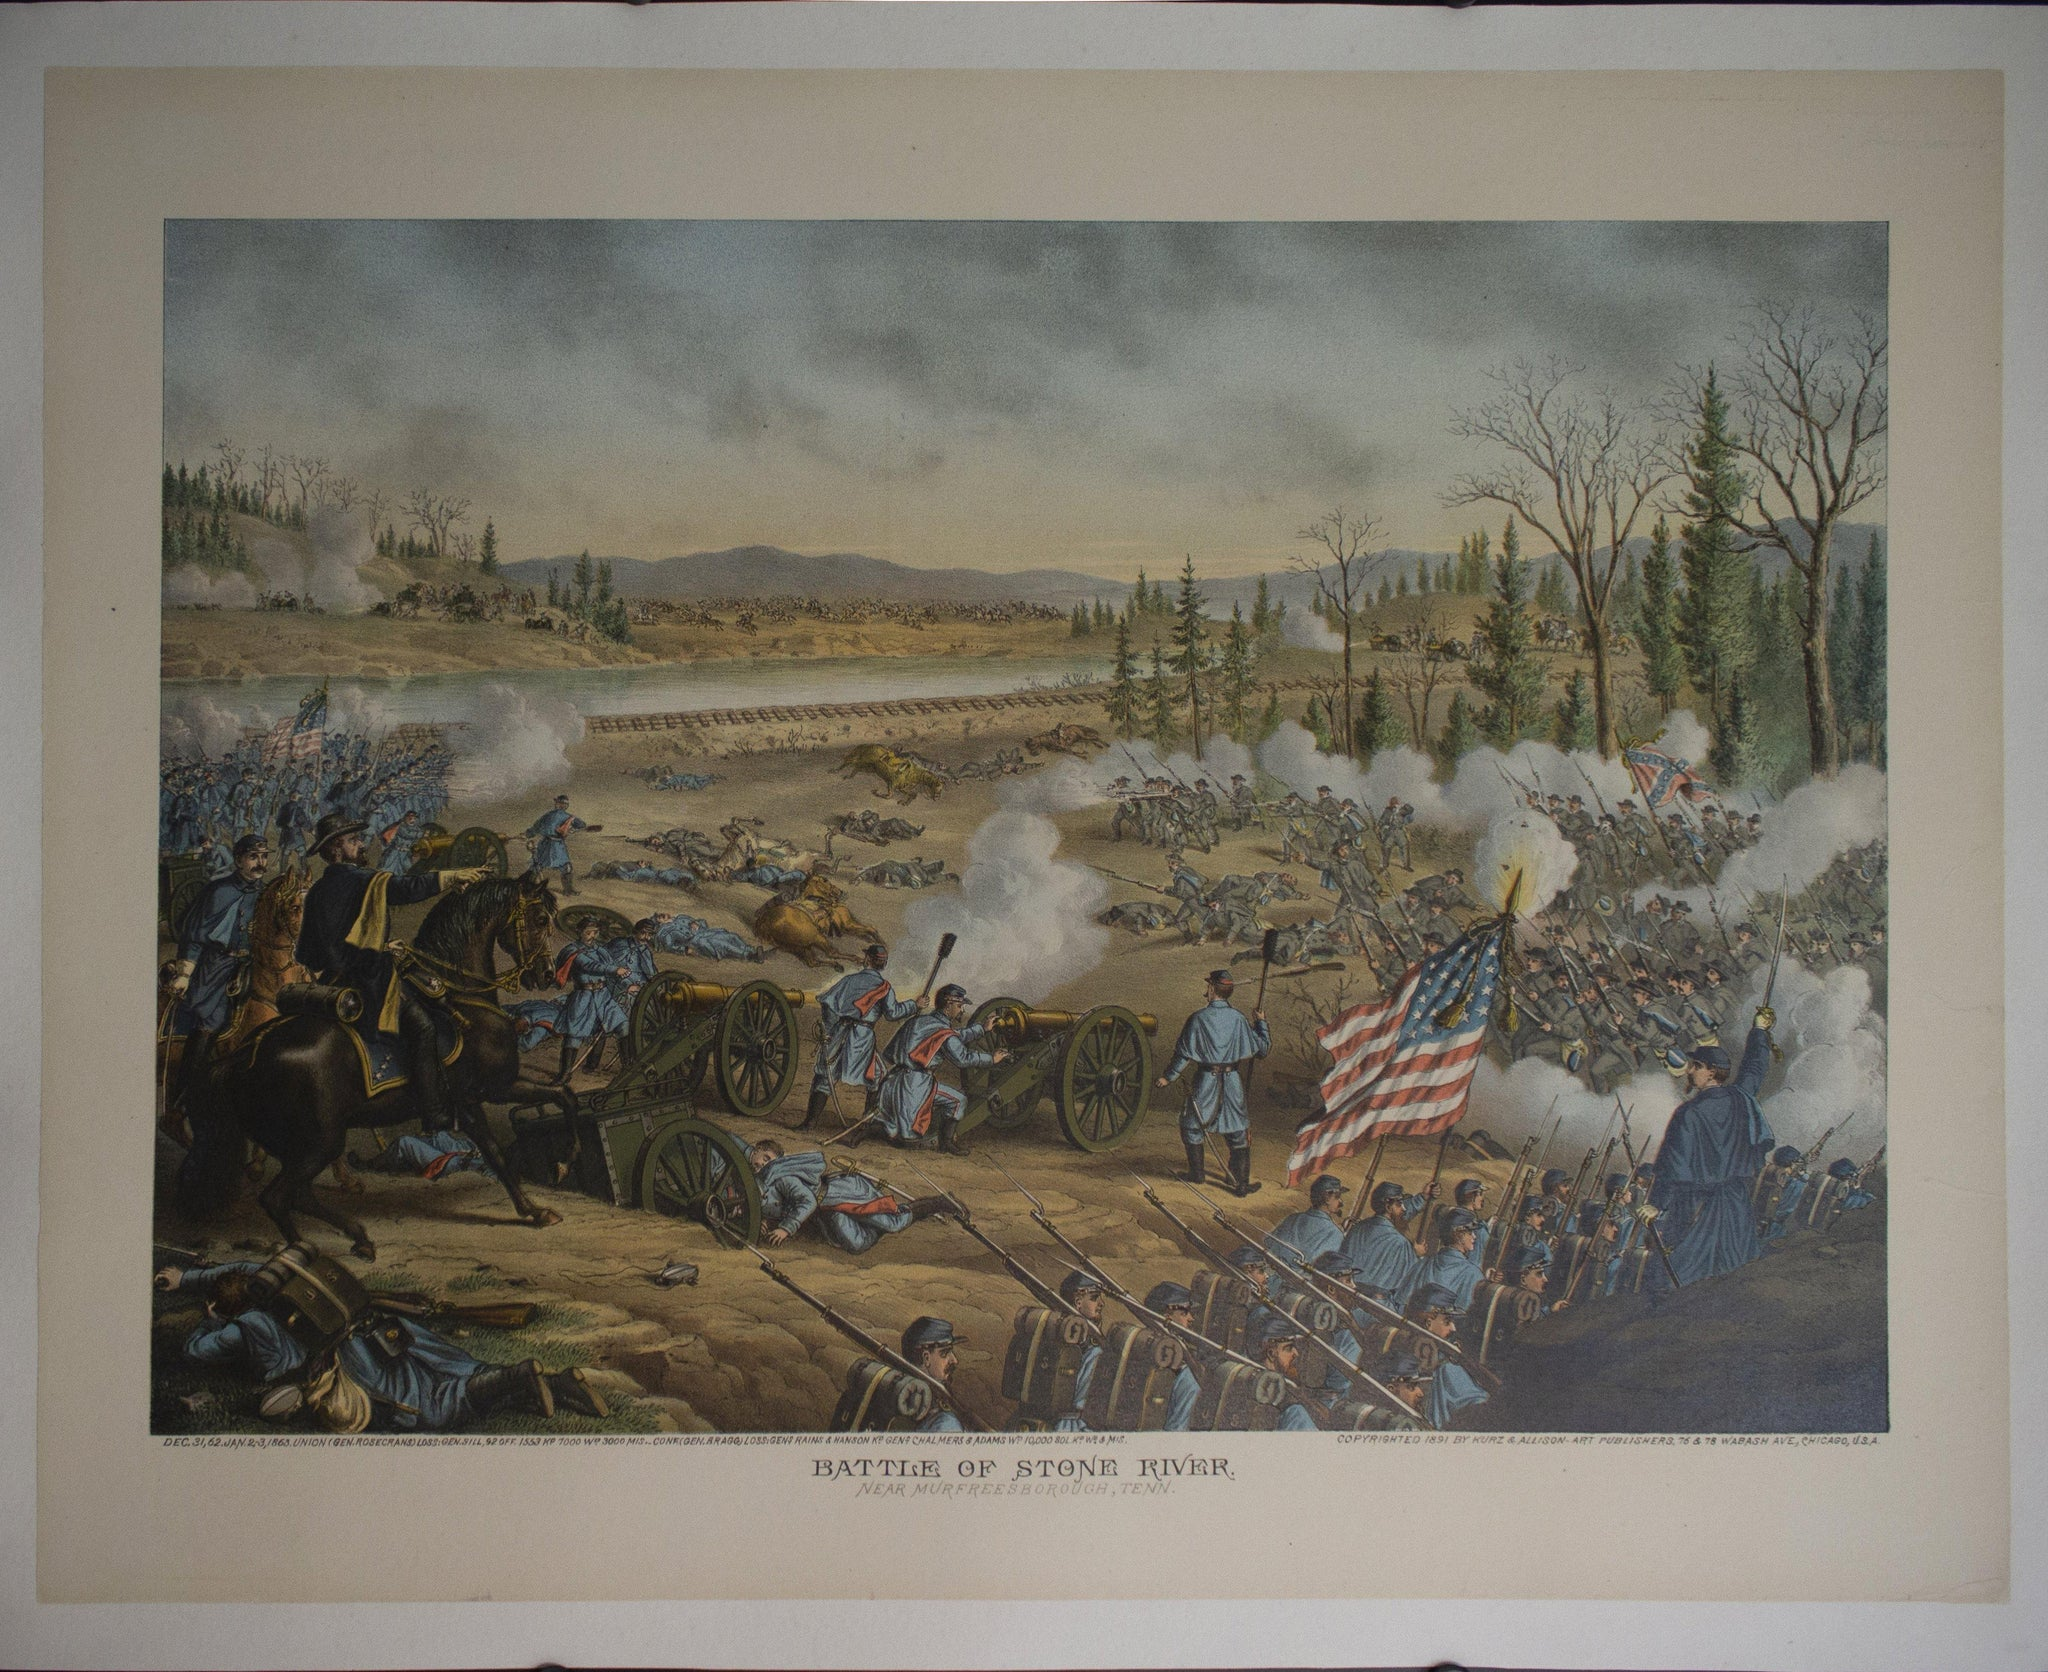 1891 Battle of Stone River Lithograph by Kurz & Allison